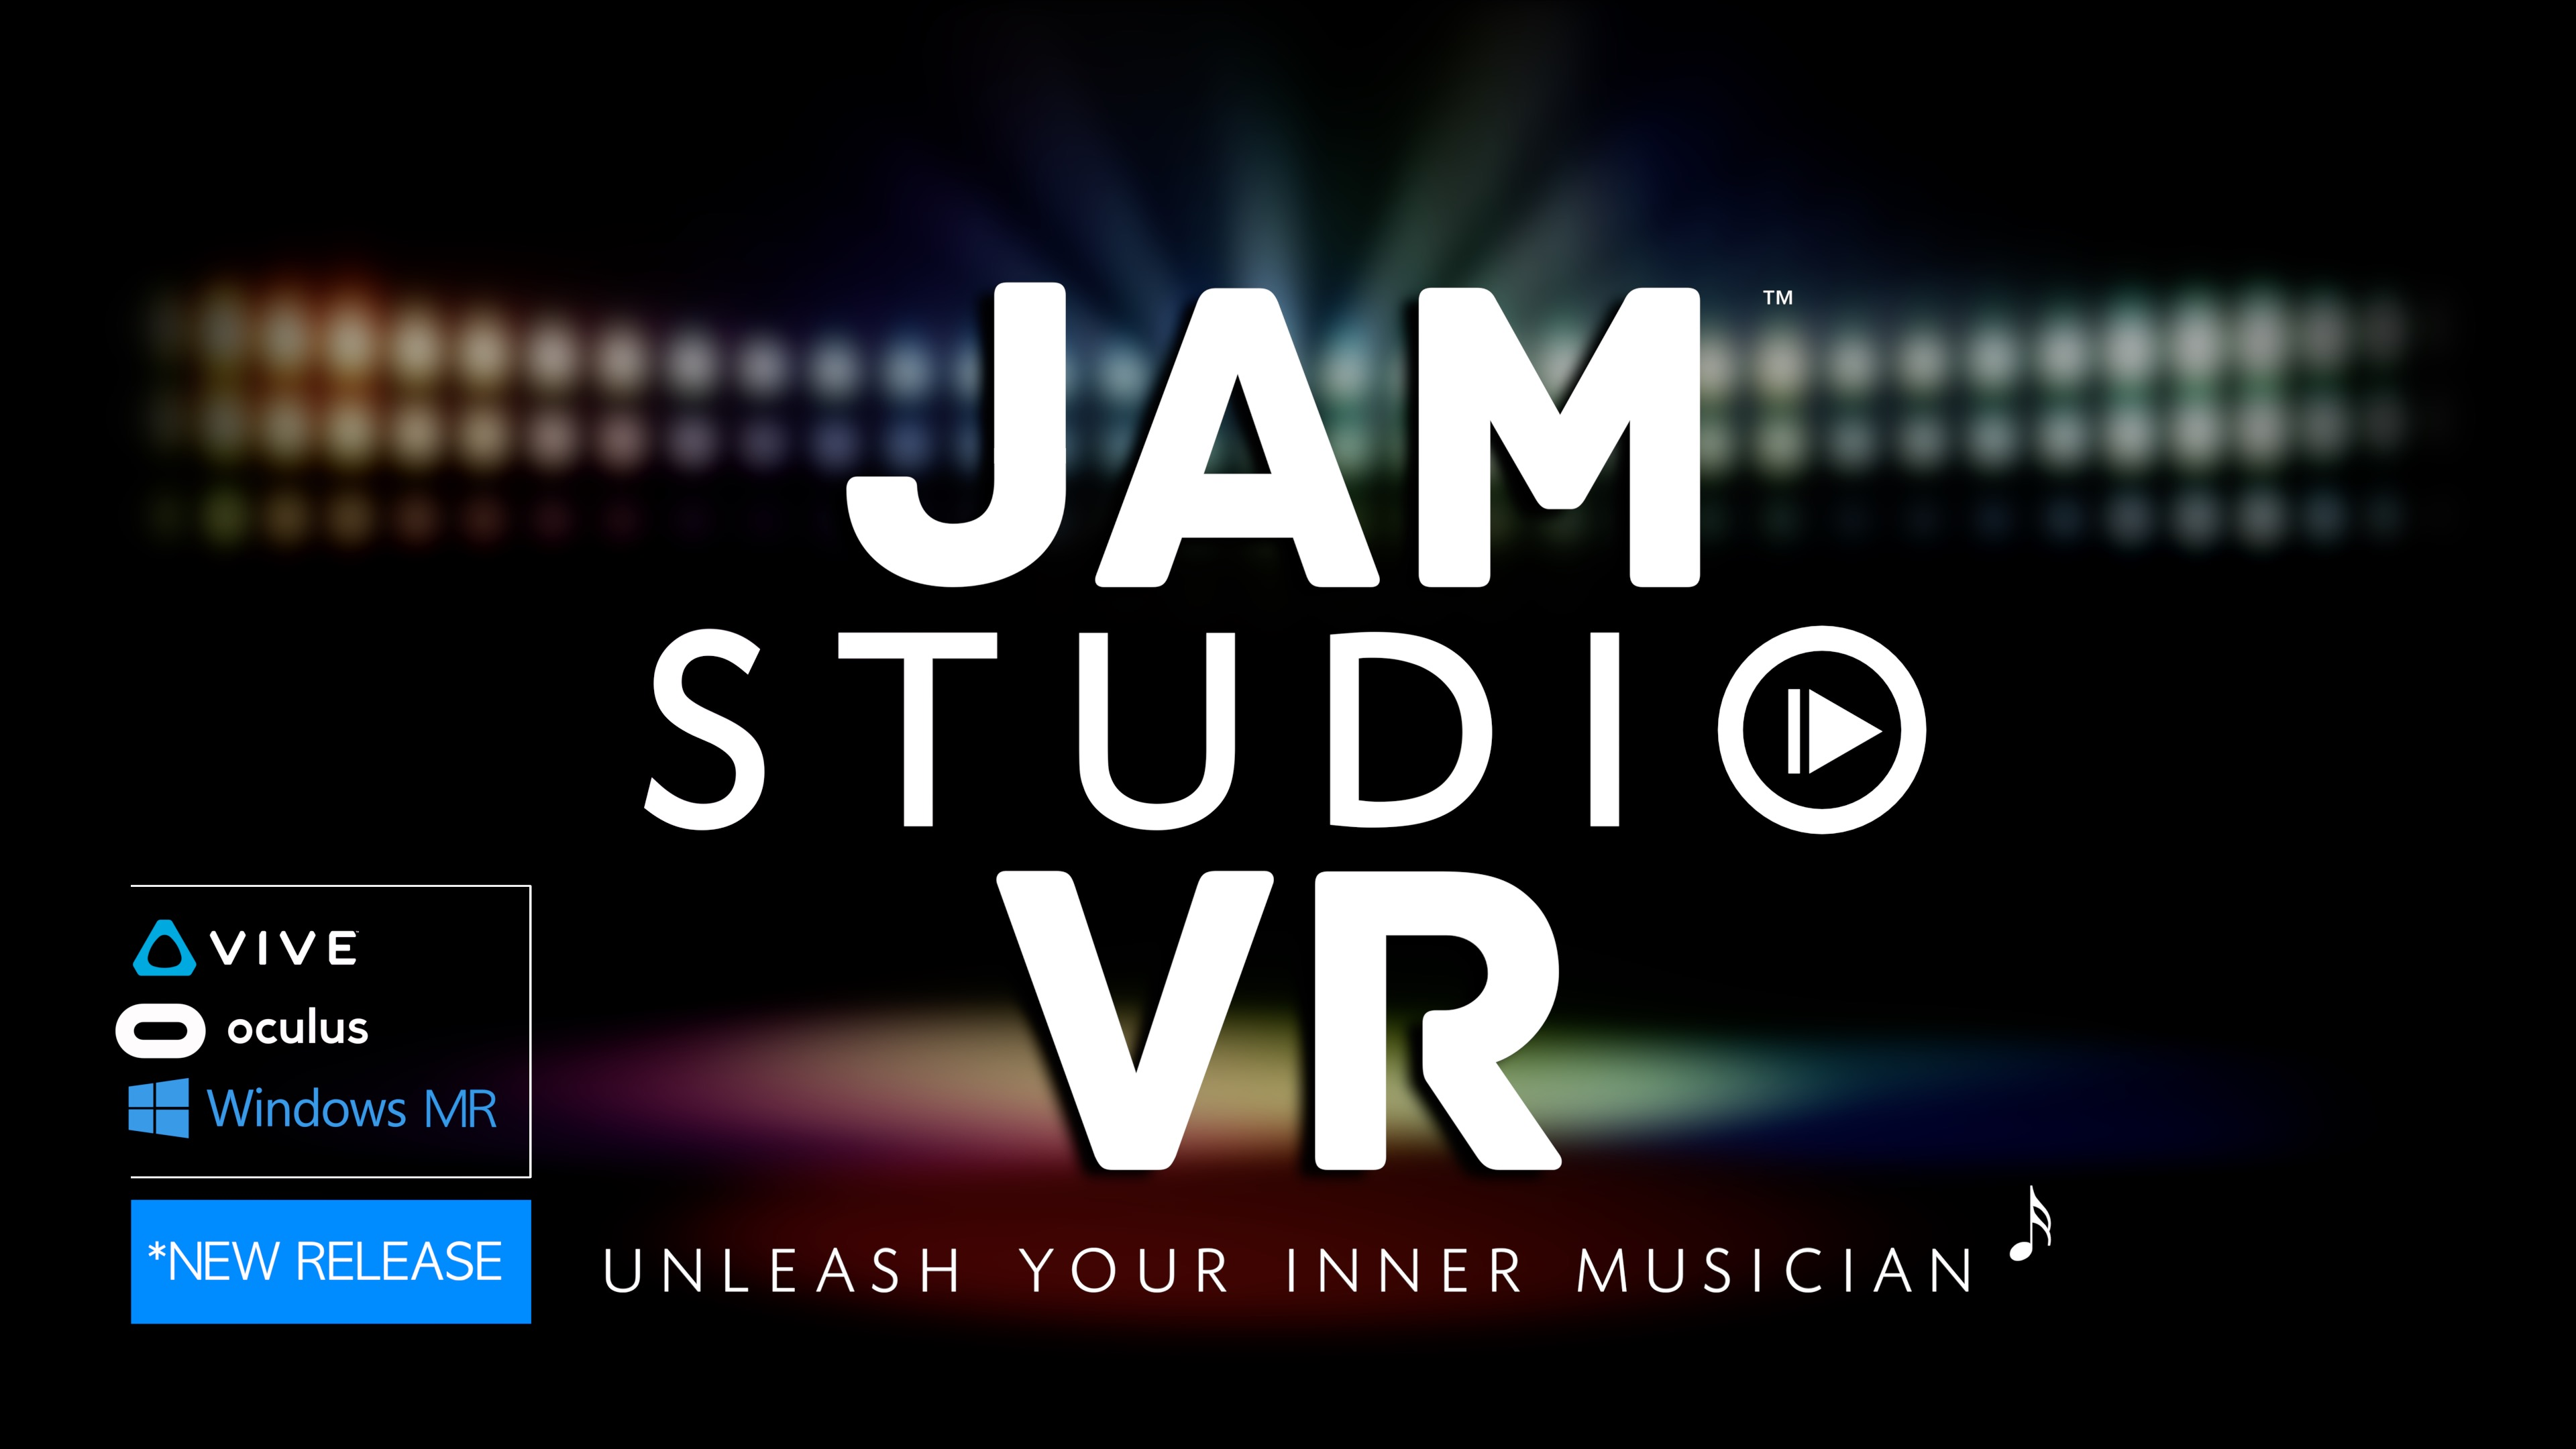 Jam Studio VR April 2018 New Release